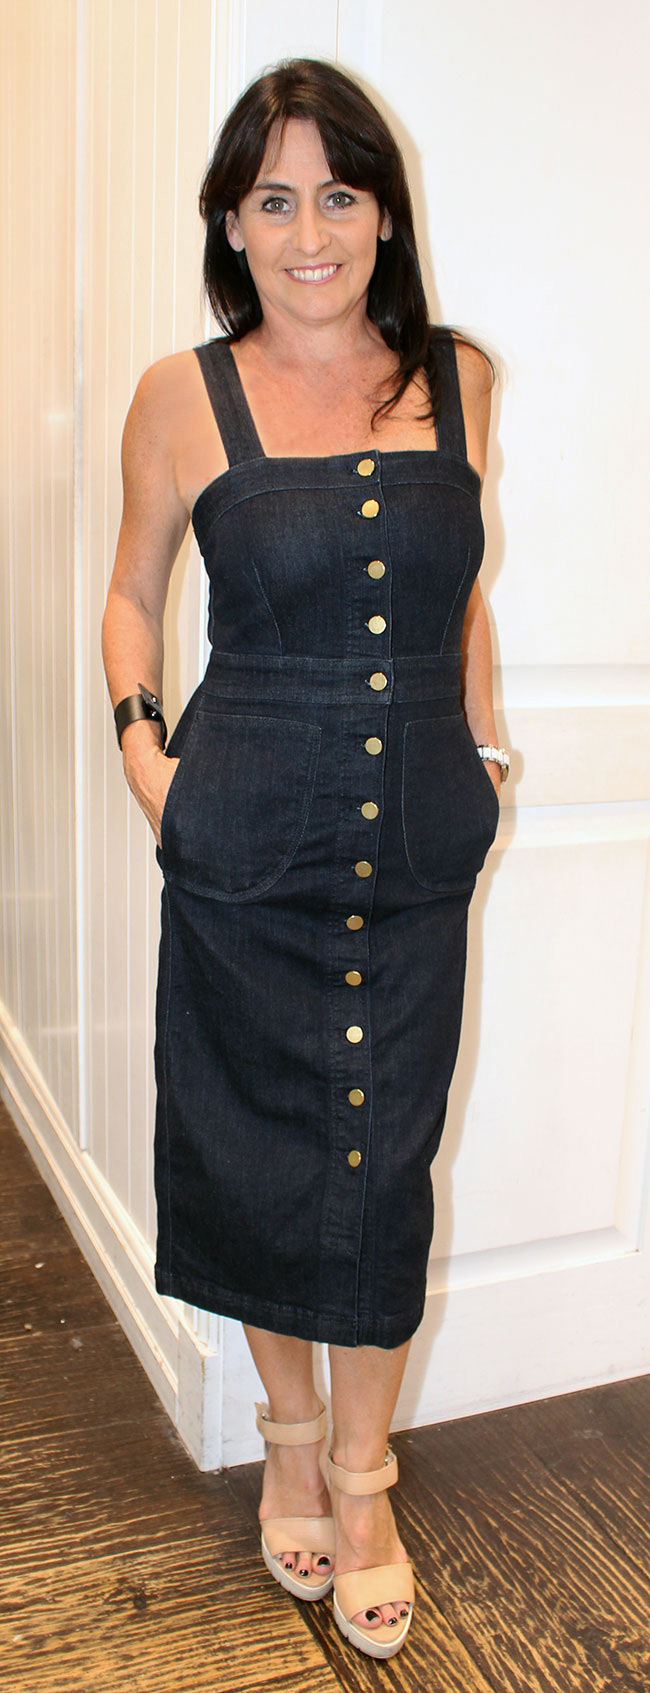 Seed denim dress $149.95